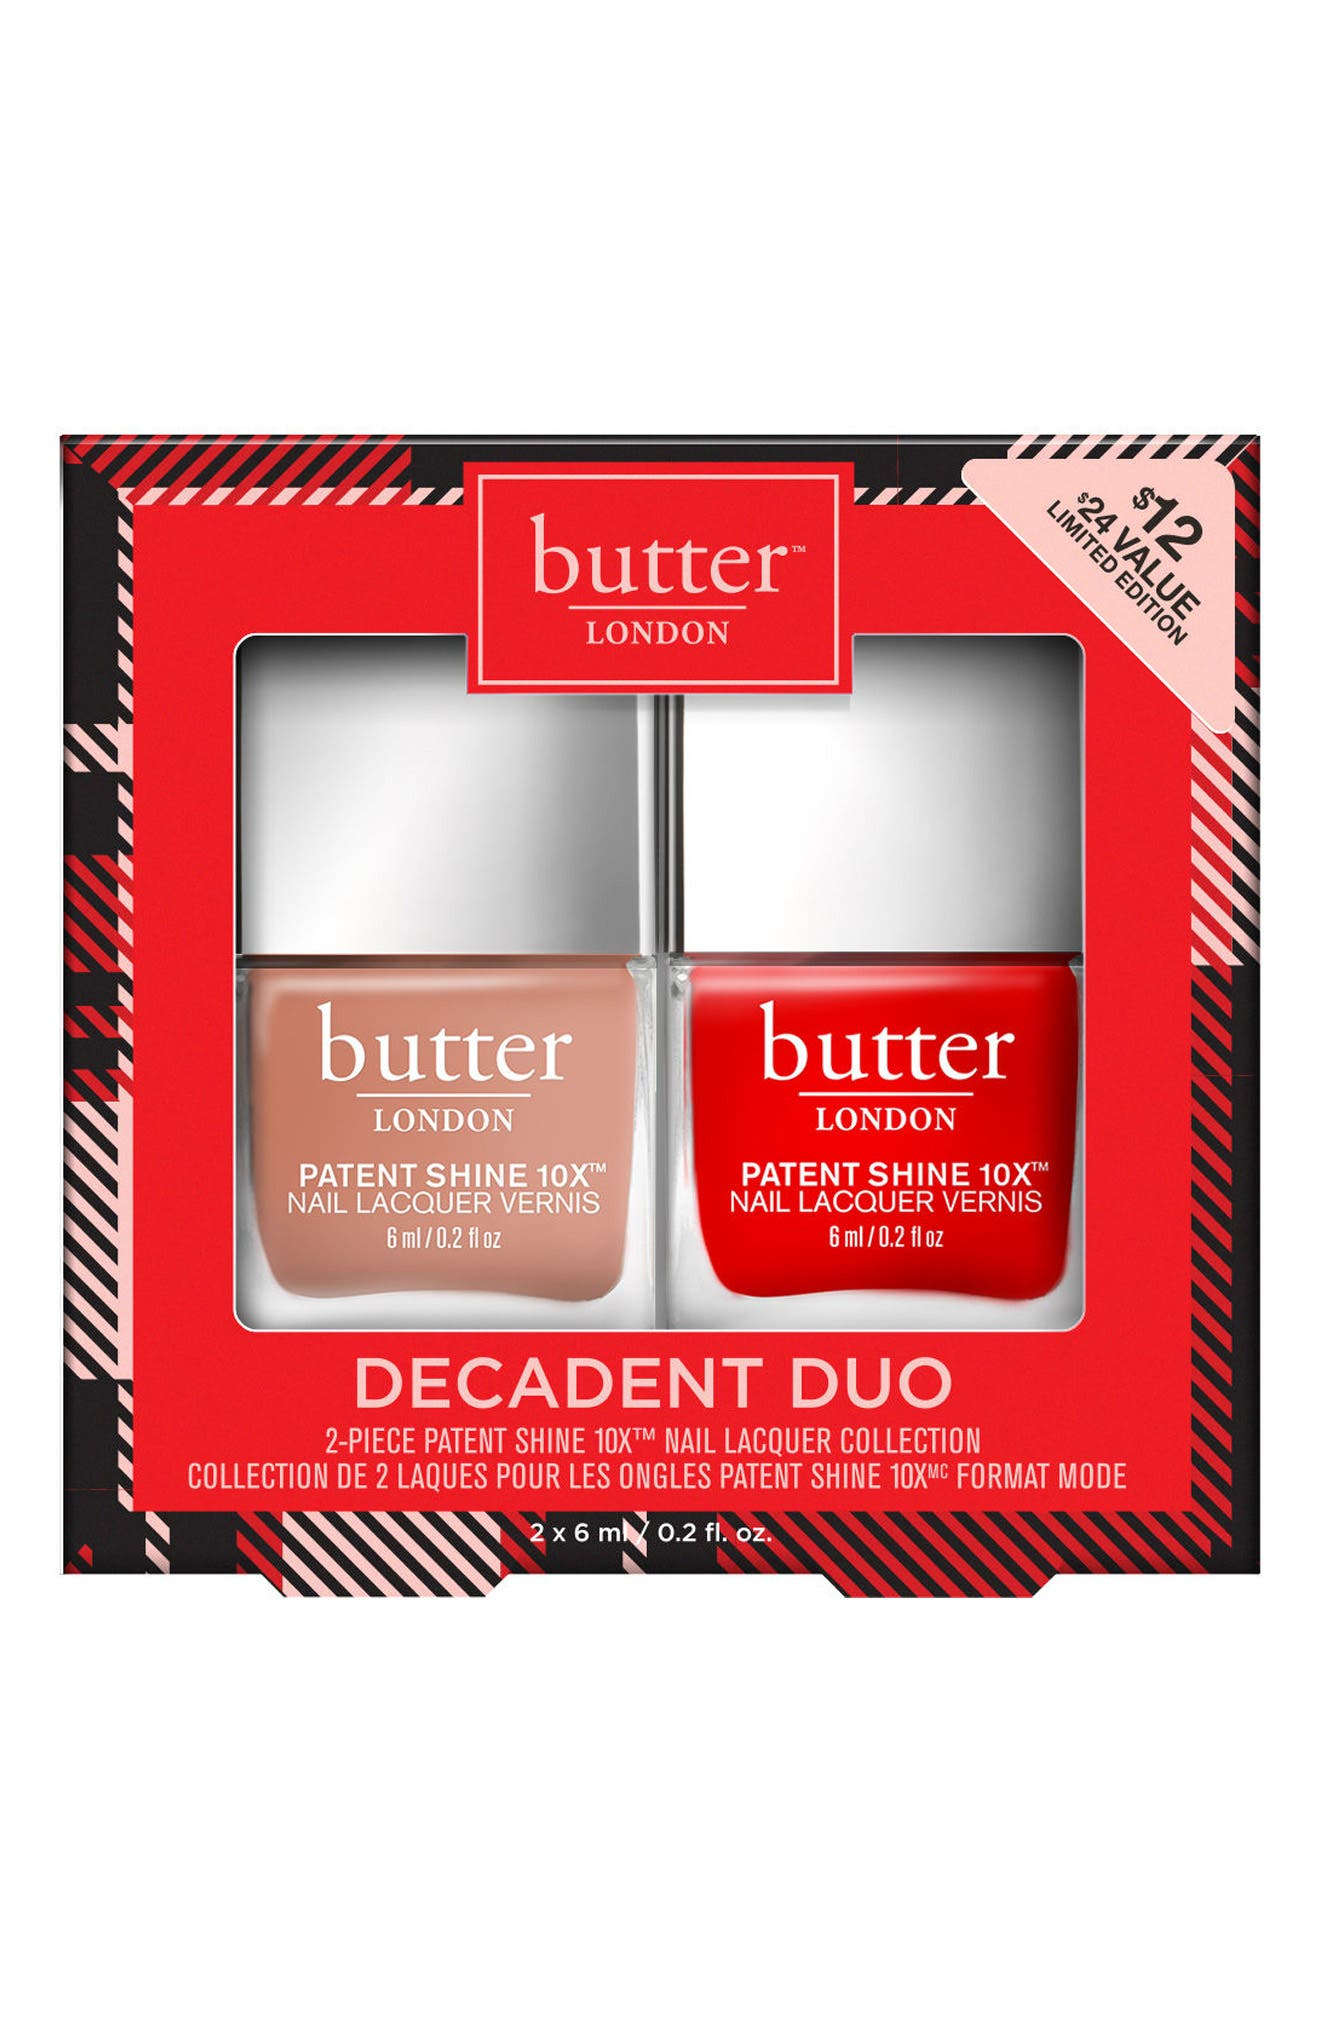 butter LONDON Decadent Duo (Nordstrom Exclusive) ($24 Value)